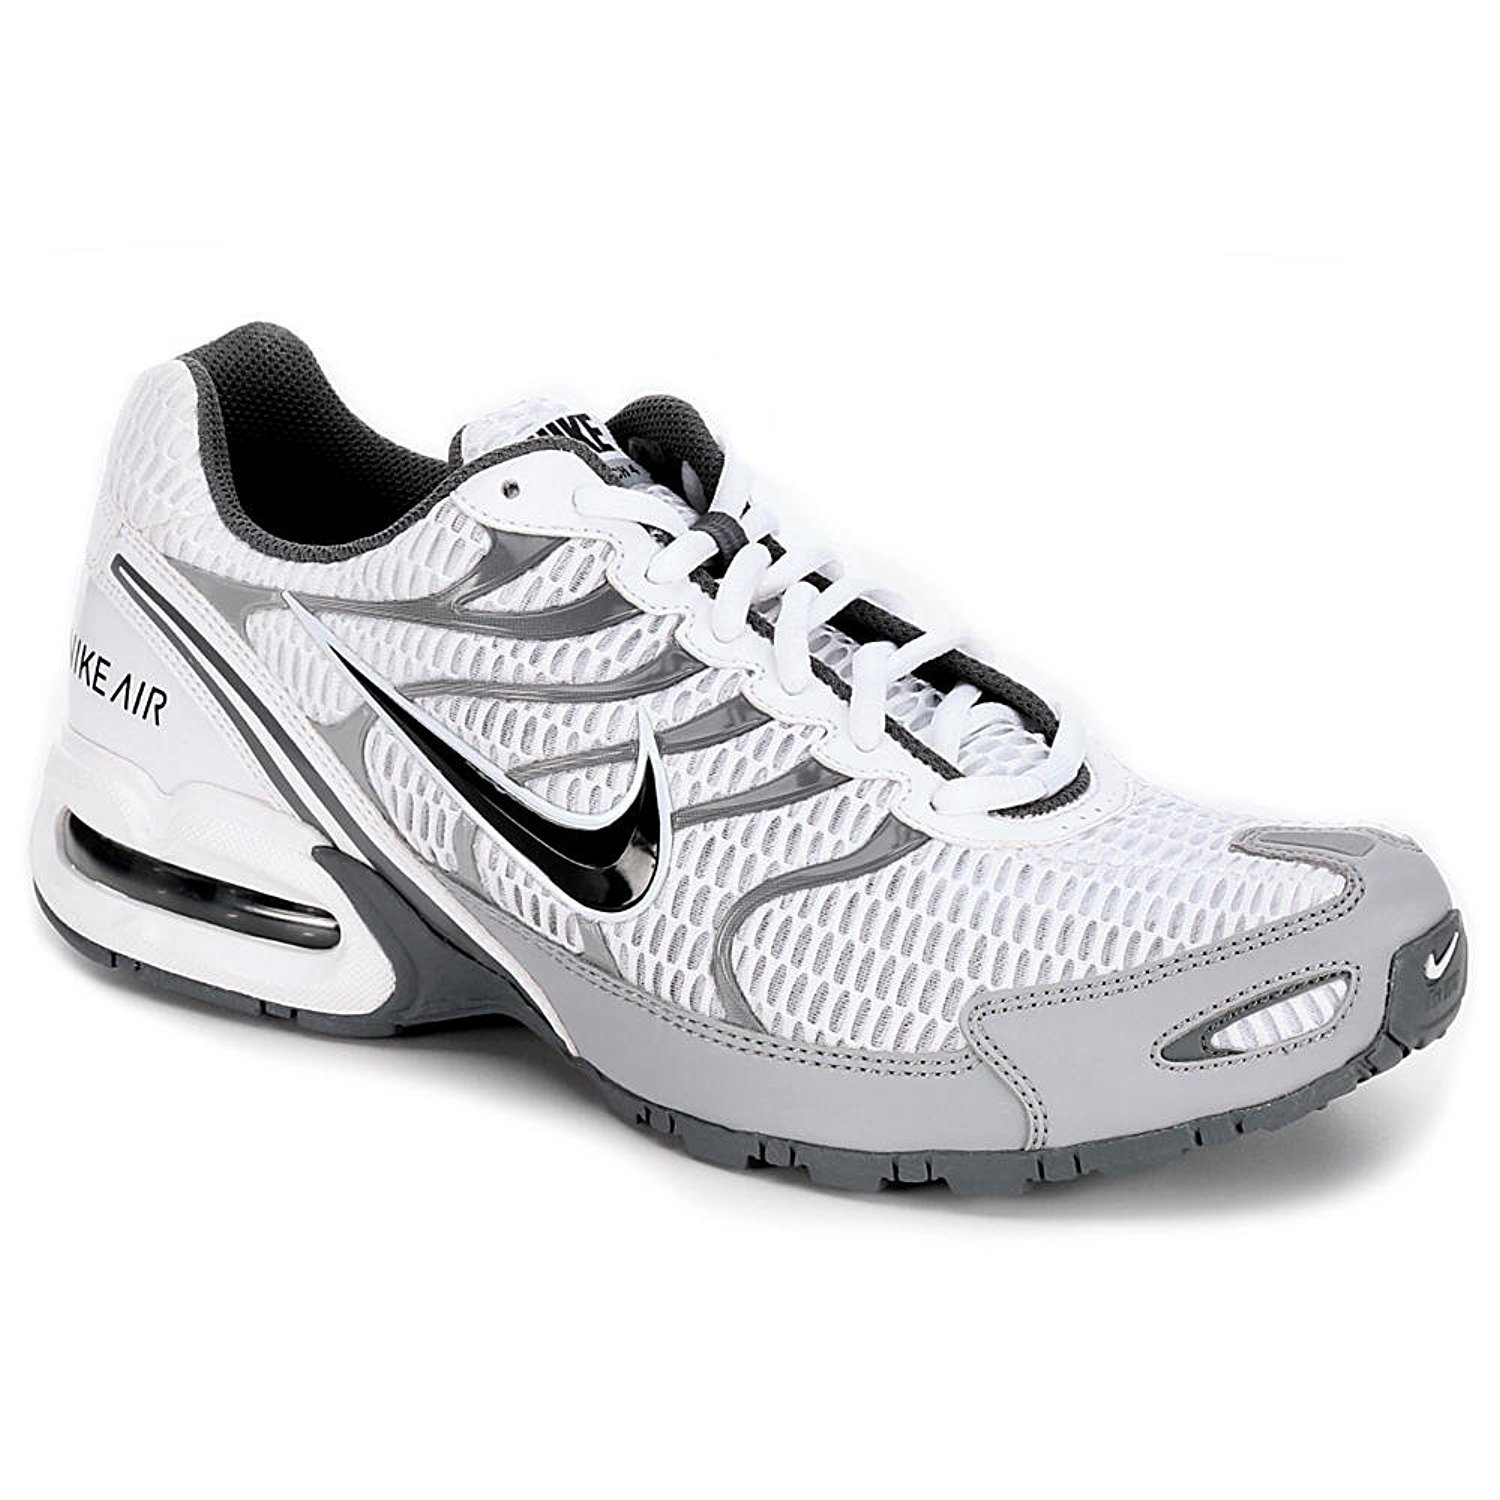 Nike Men's Air Max Torch 4 Running Shoe (WhiteAnthraciteWolf Grey Size, 15 D(M) US)